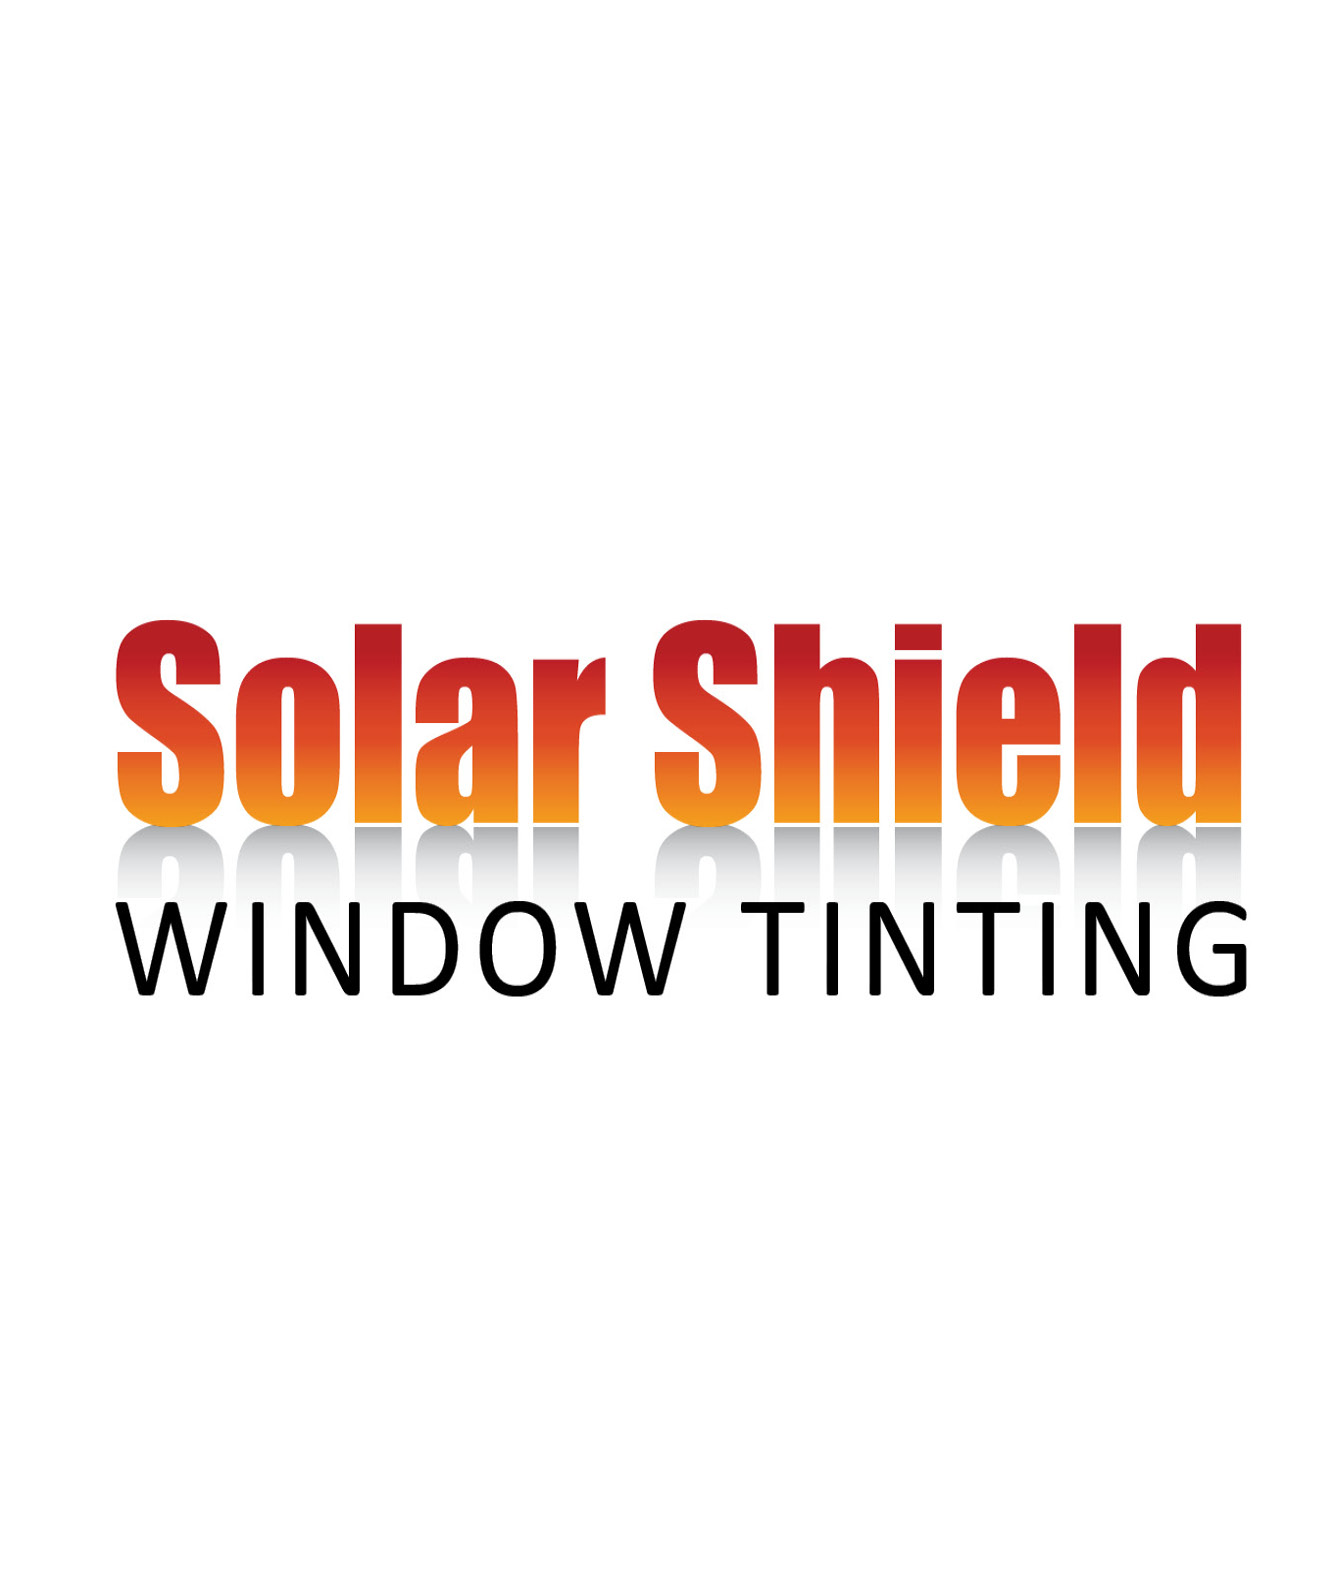 Solar Shield Window Tinting Logo Design